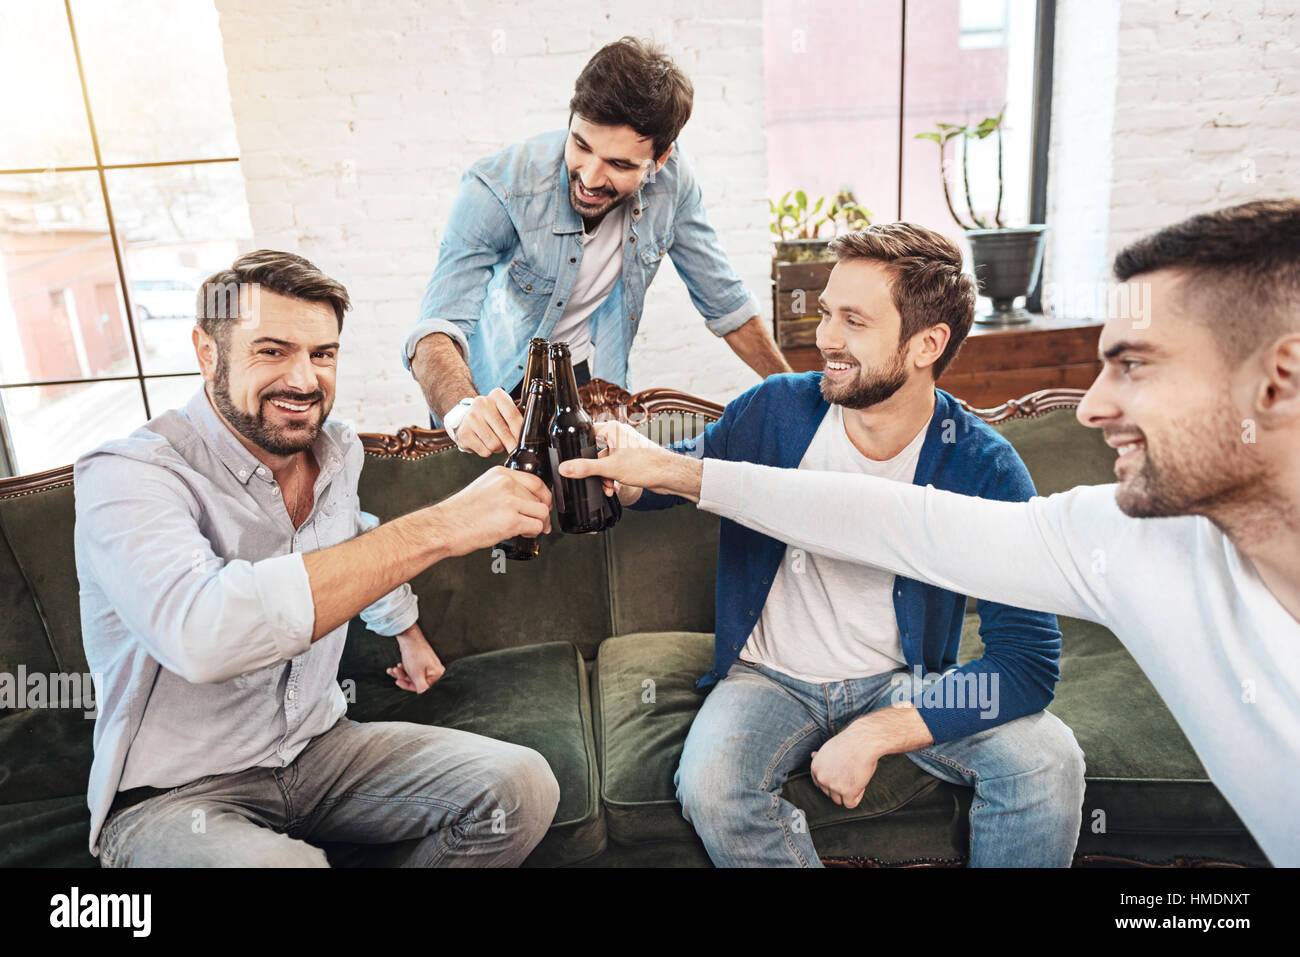 Happy bearded man cheering with his friends - Stock Image